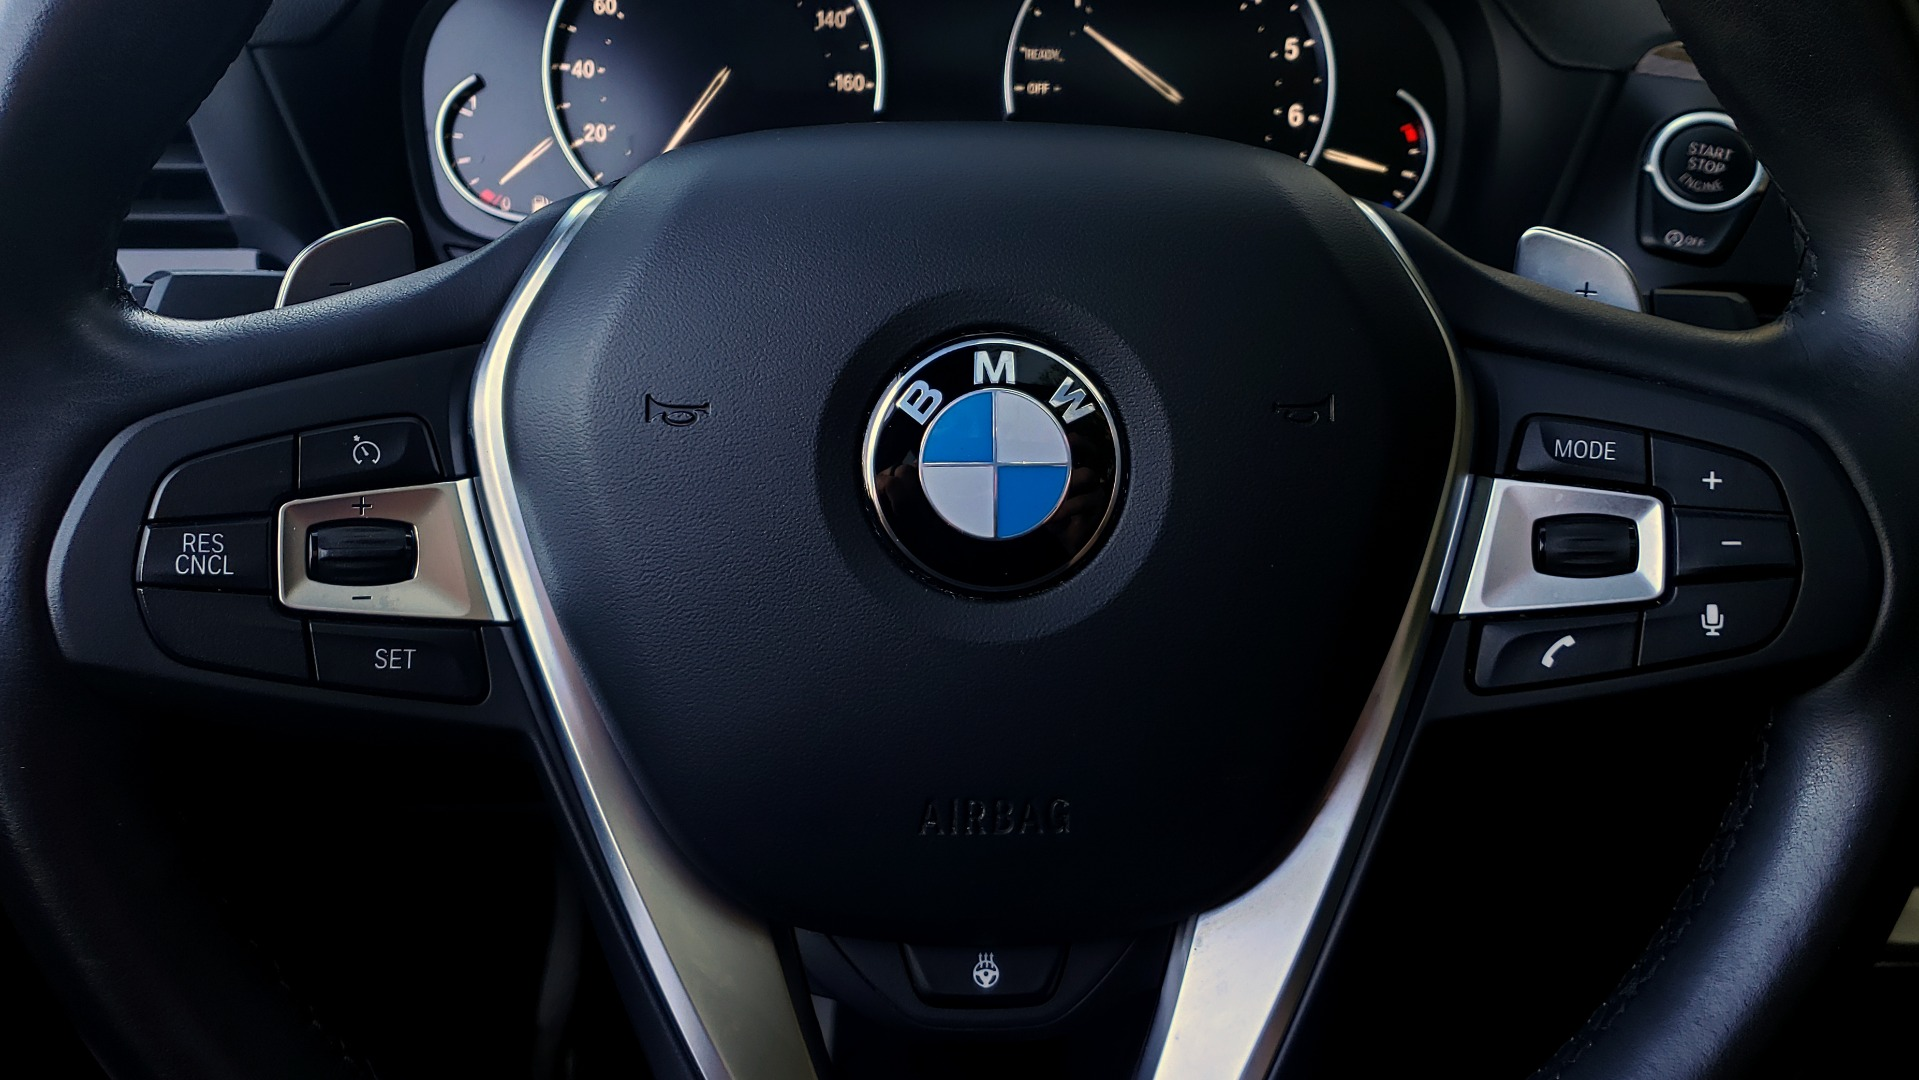 Used 2019 BMW X3 XDRIVE30I / DRVR ASST / PANO-ROOF / HTD STS / REARVIEW for sale $41,995 at Formula Imports in Charlotte NC 28227 51